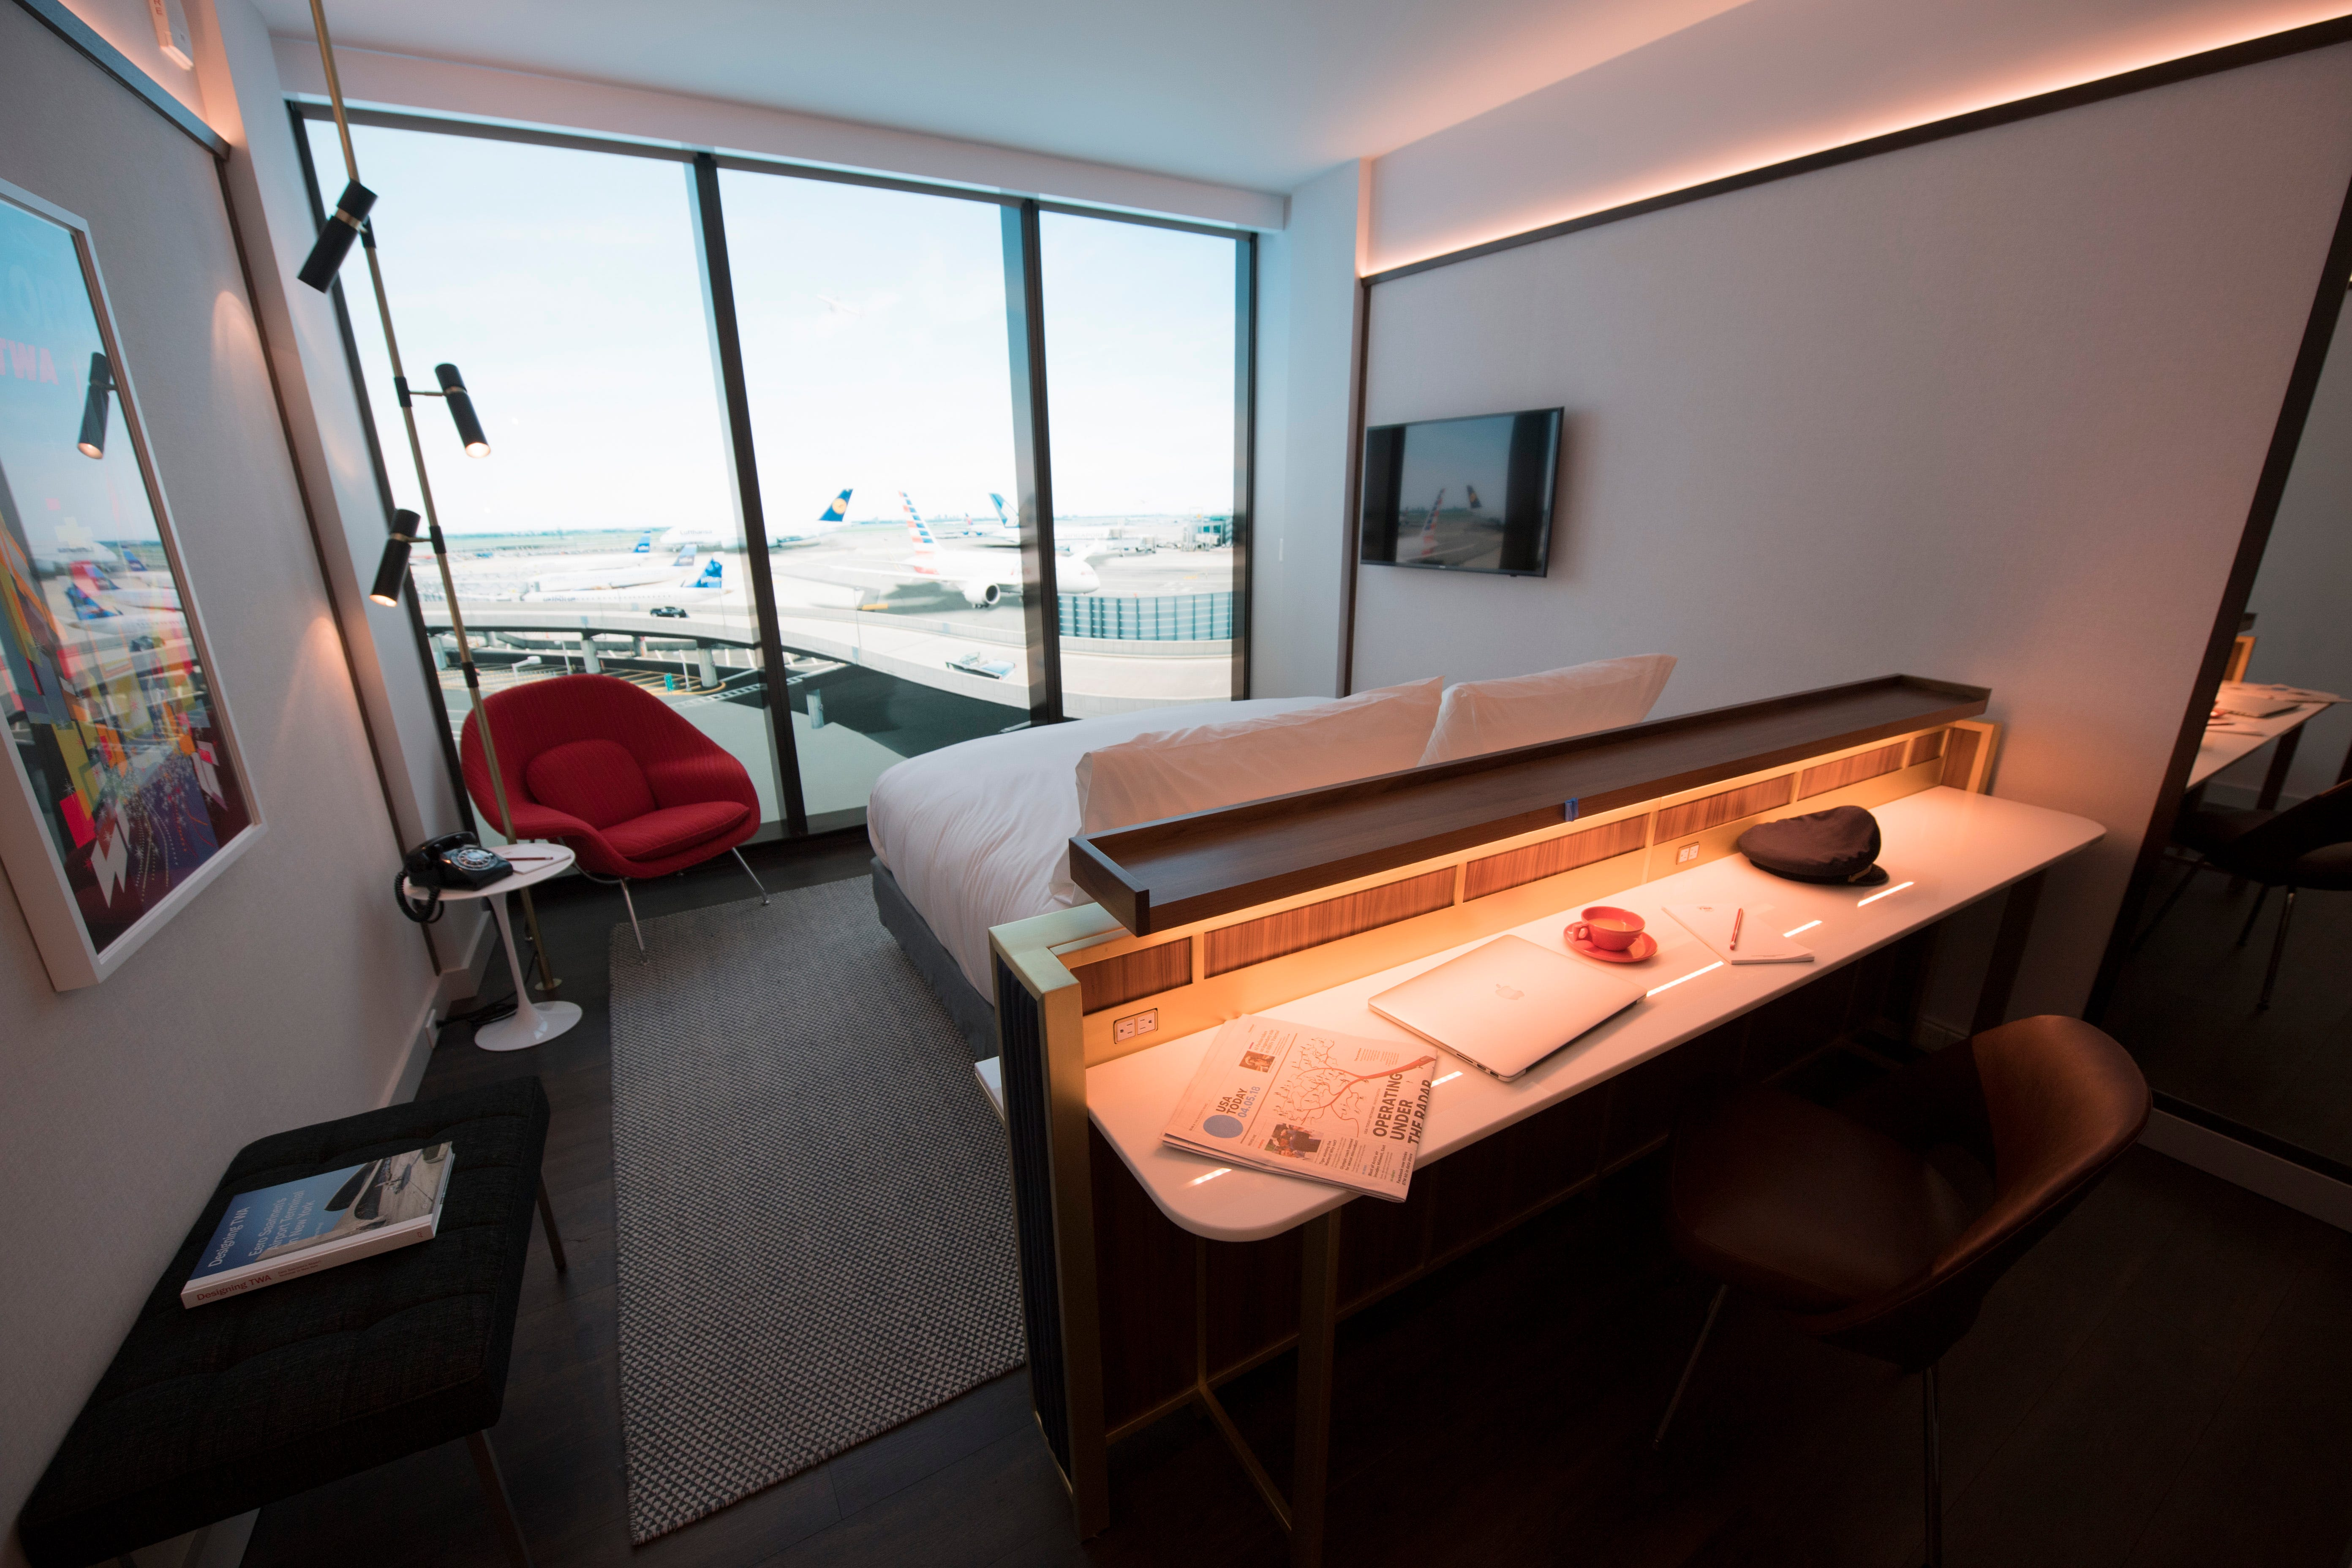 Exclusive first look: Inching closer to launch, TWA Hotel unveils room design